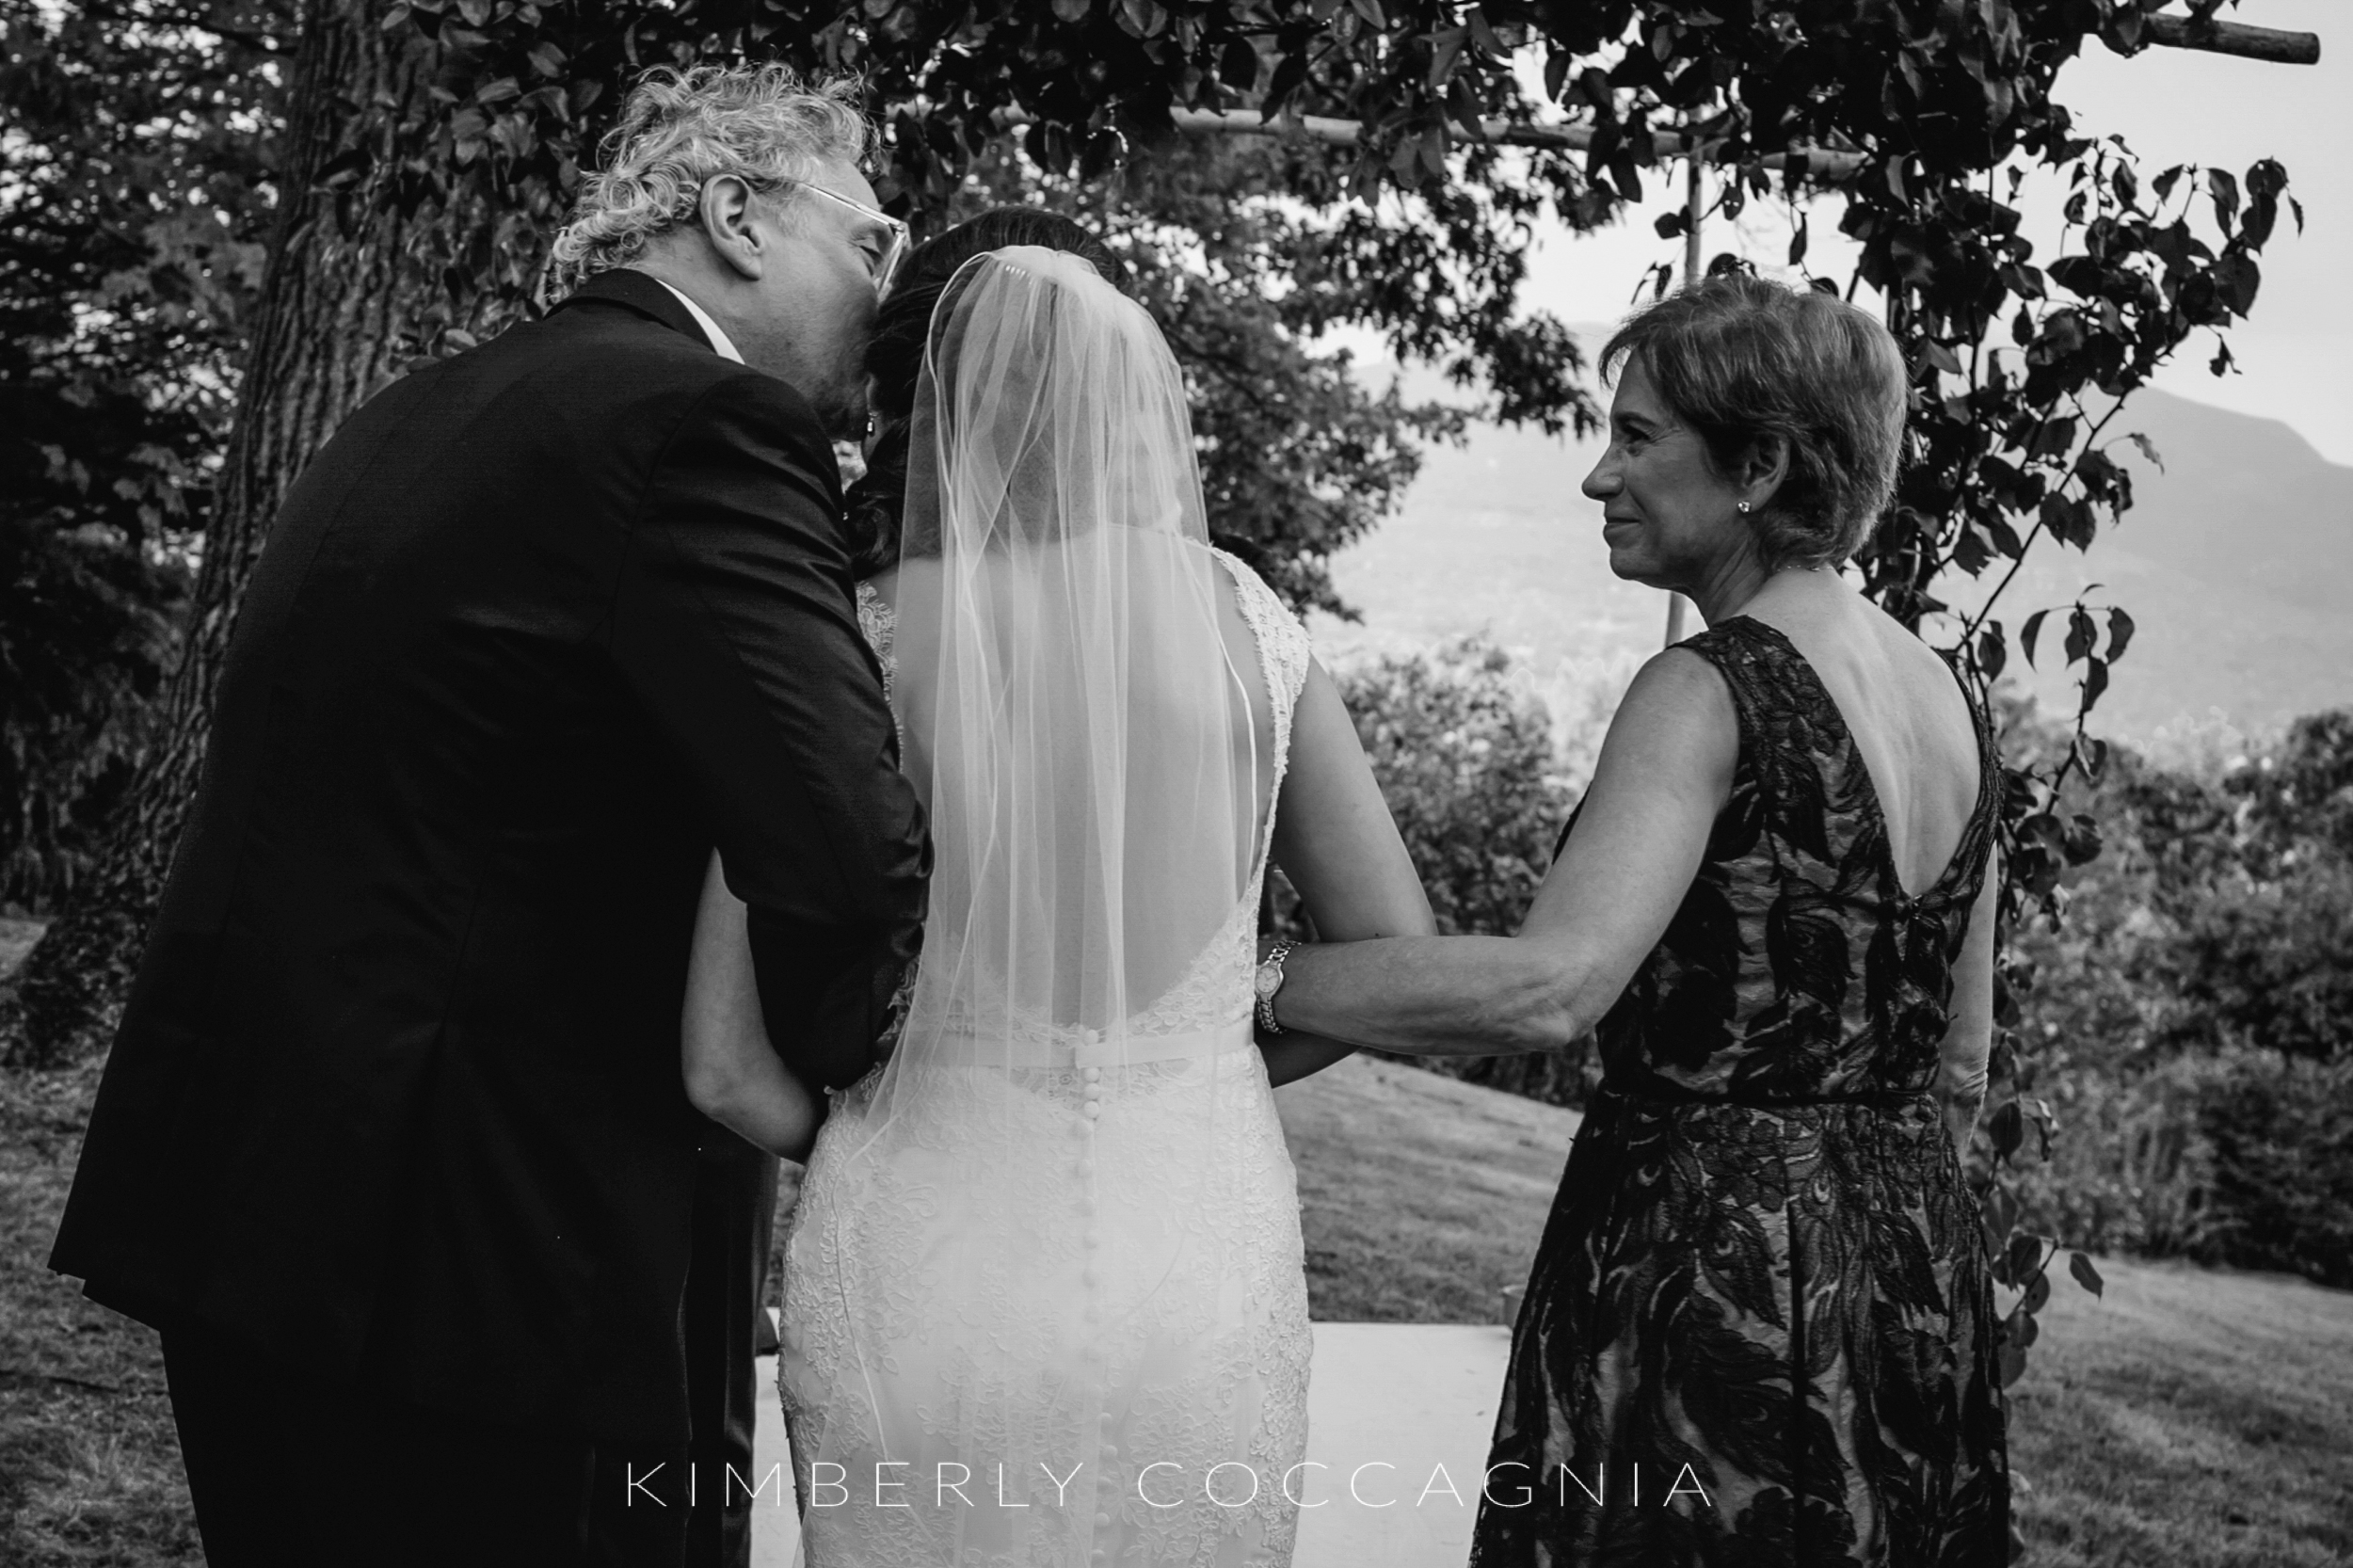 Kimberly+Coccagnia+Hudson+Valley+Wedding+Photographer-49.JPG